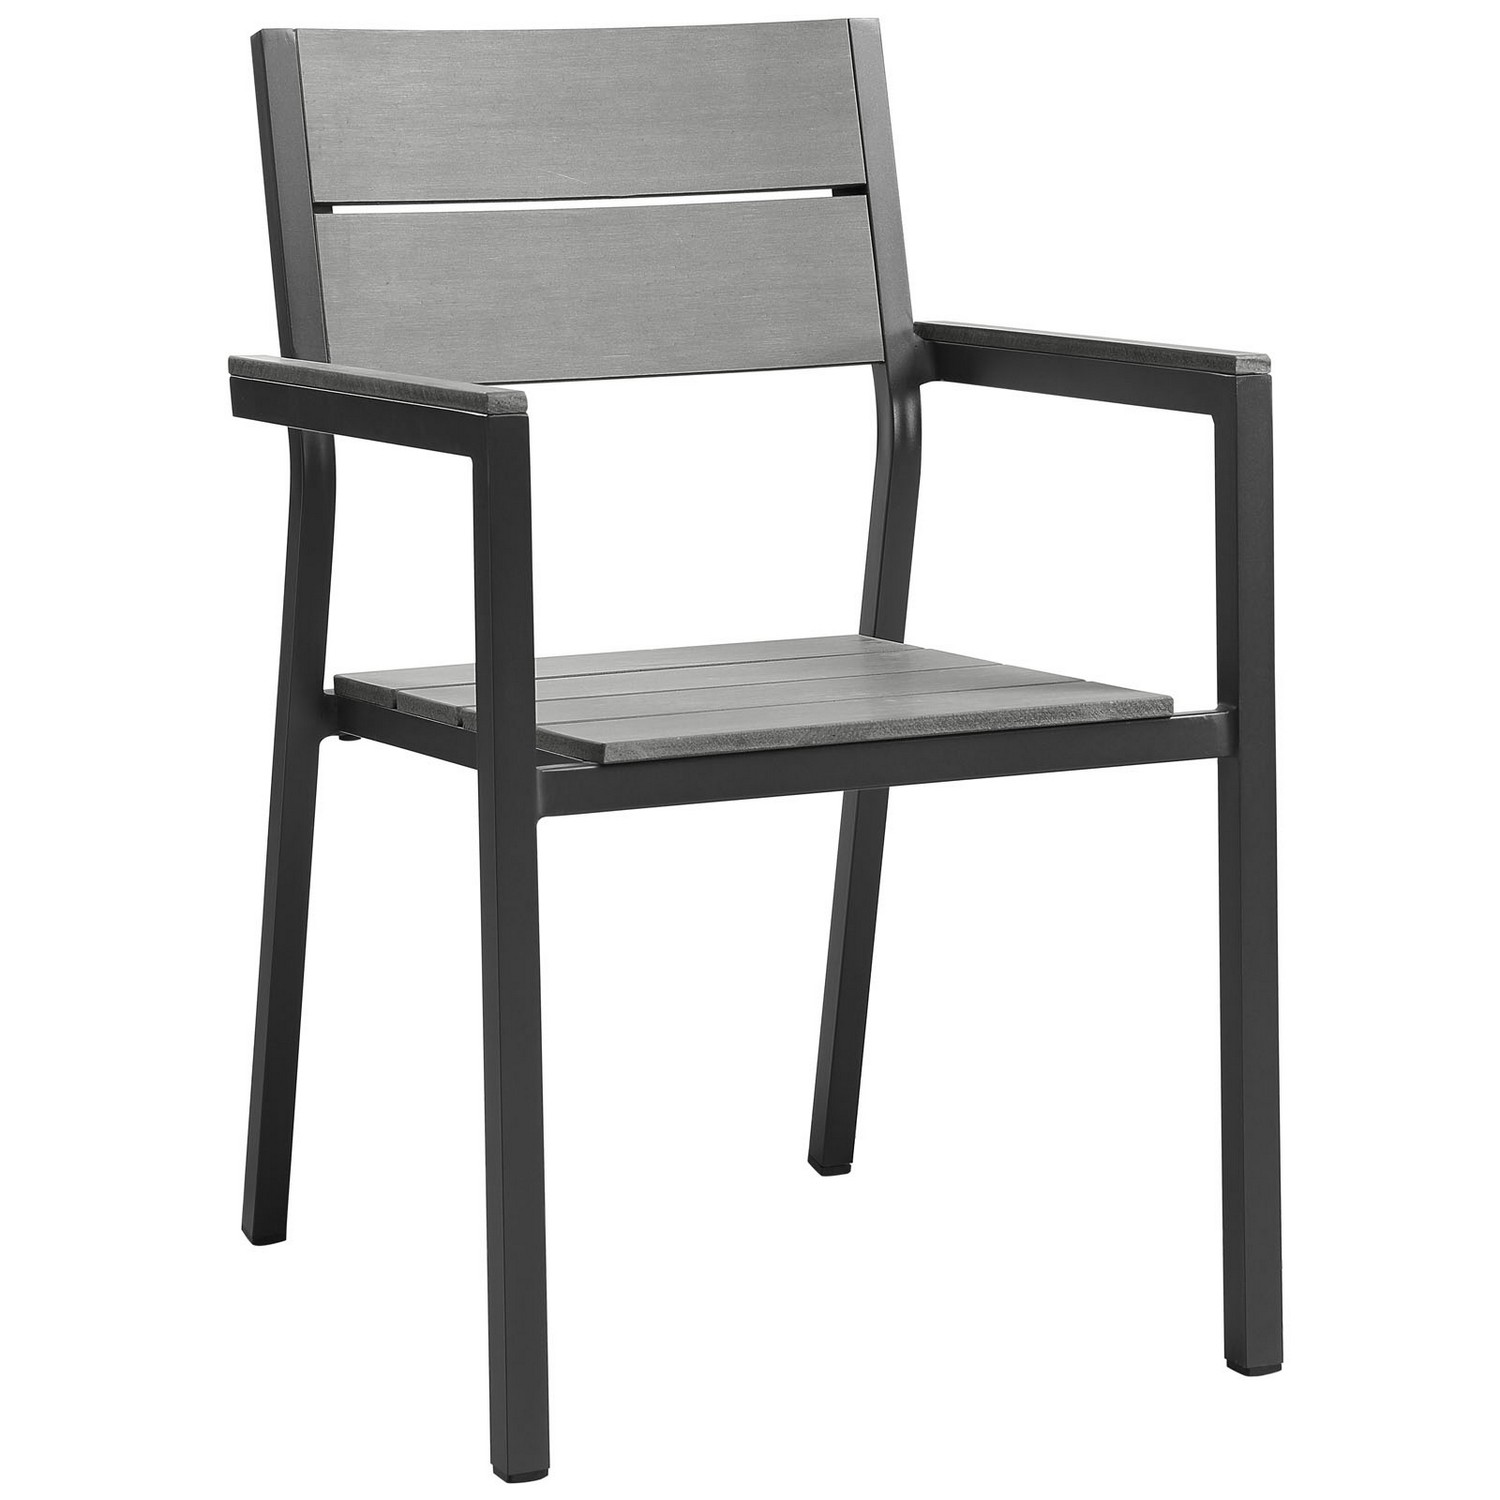 Modway Maine Dining Outdoor Patio Armchair - Brown/Gray